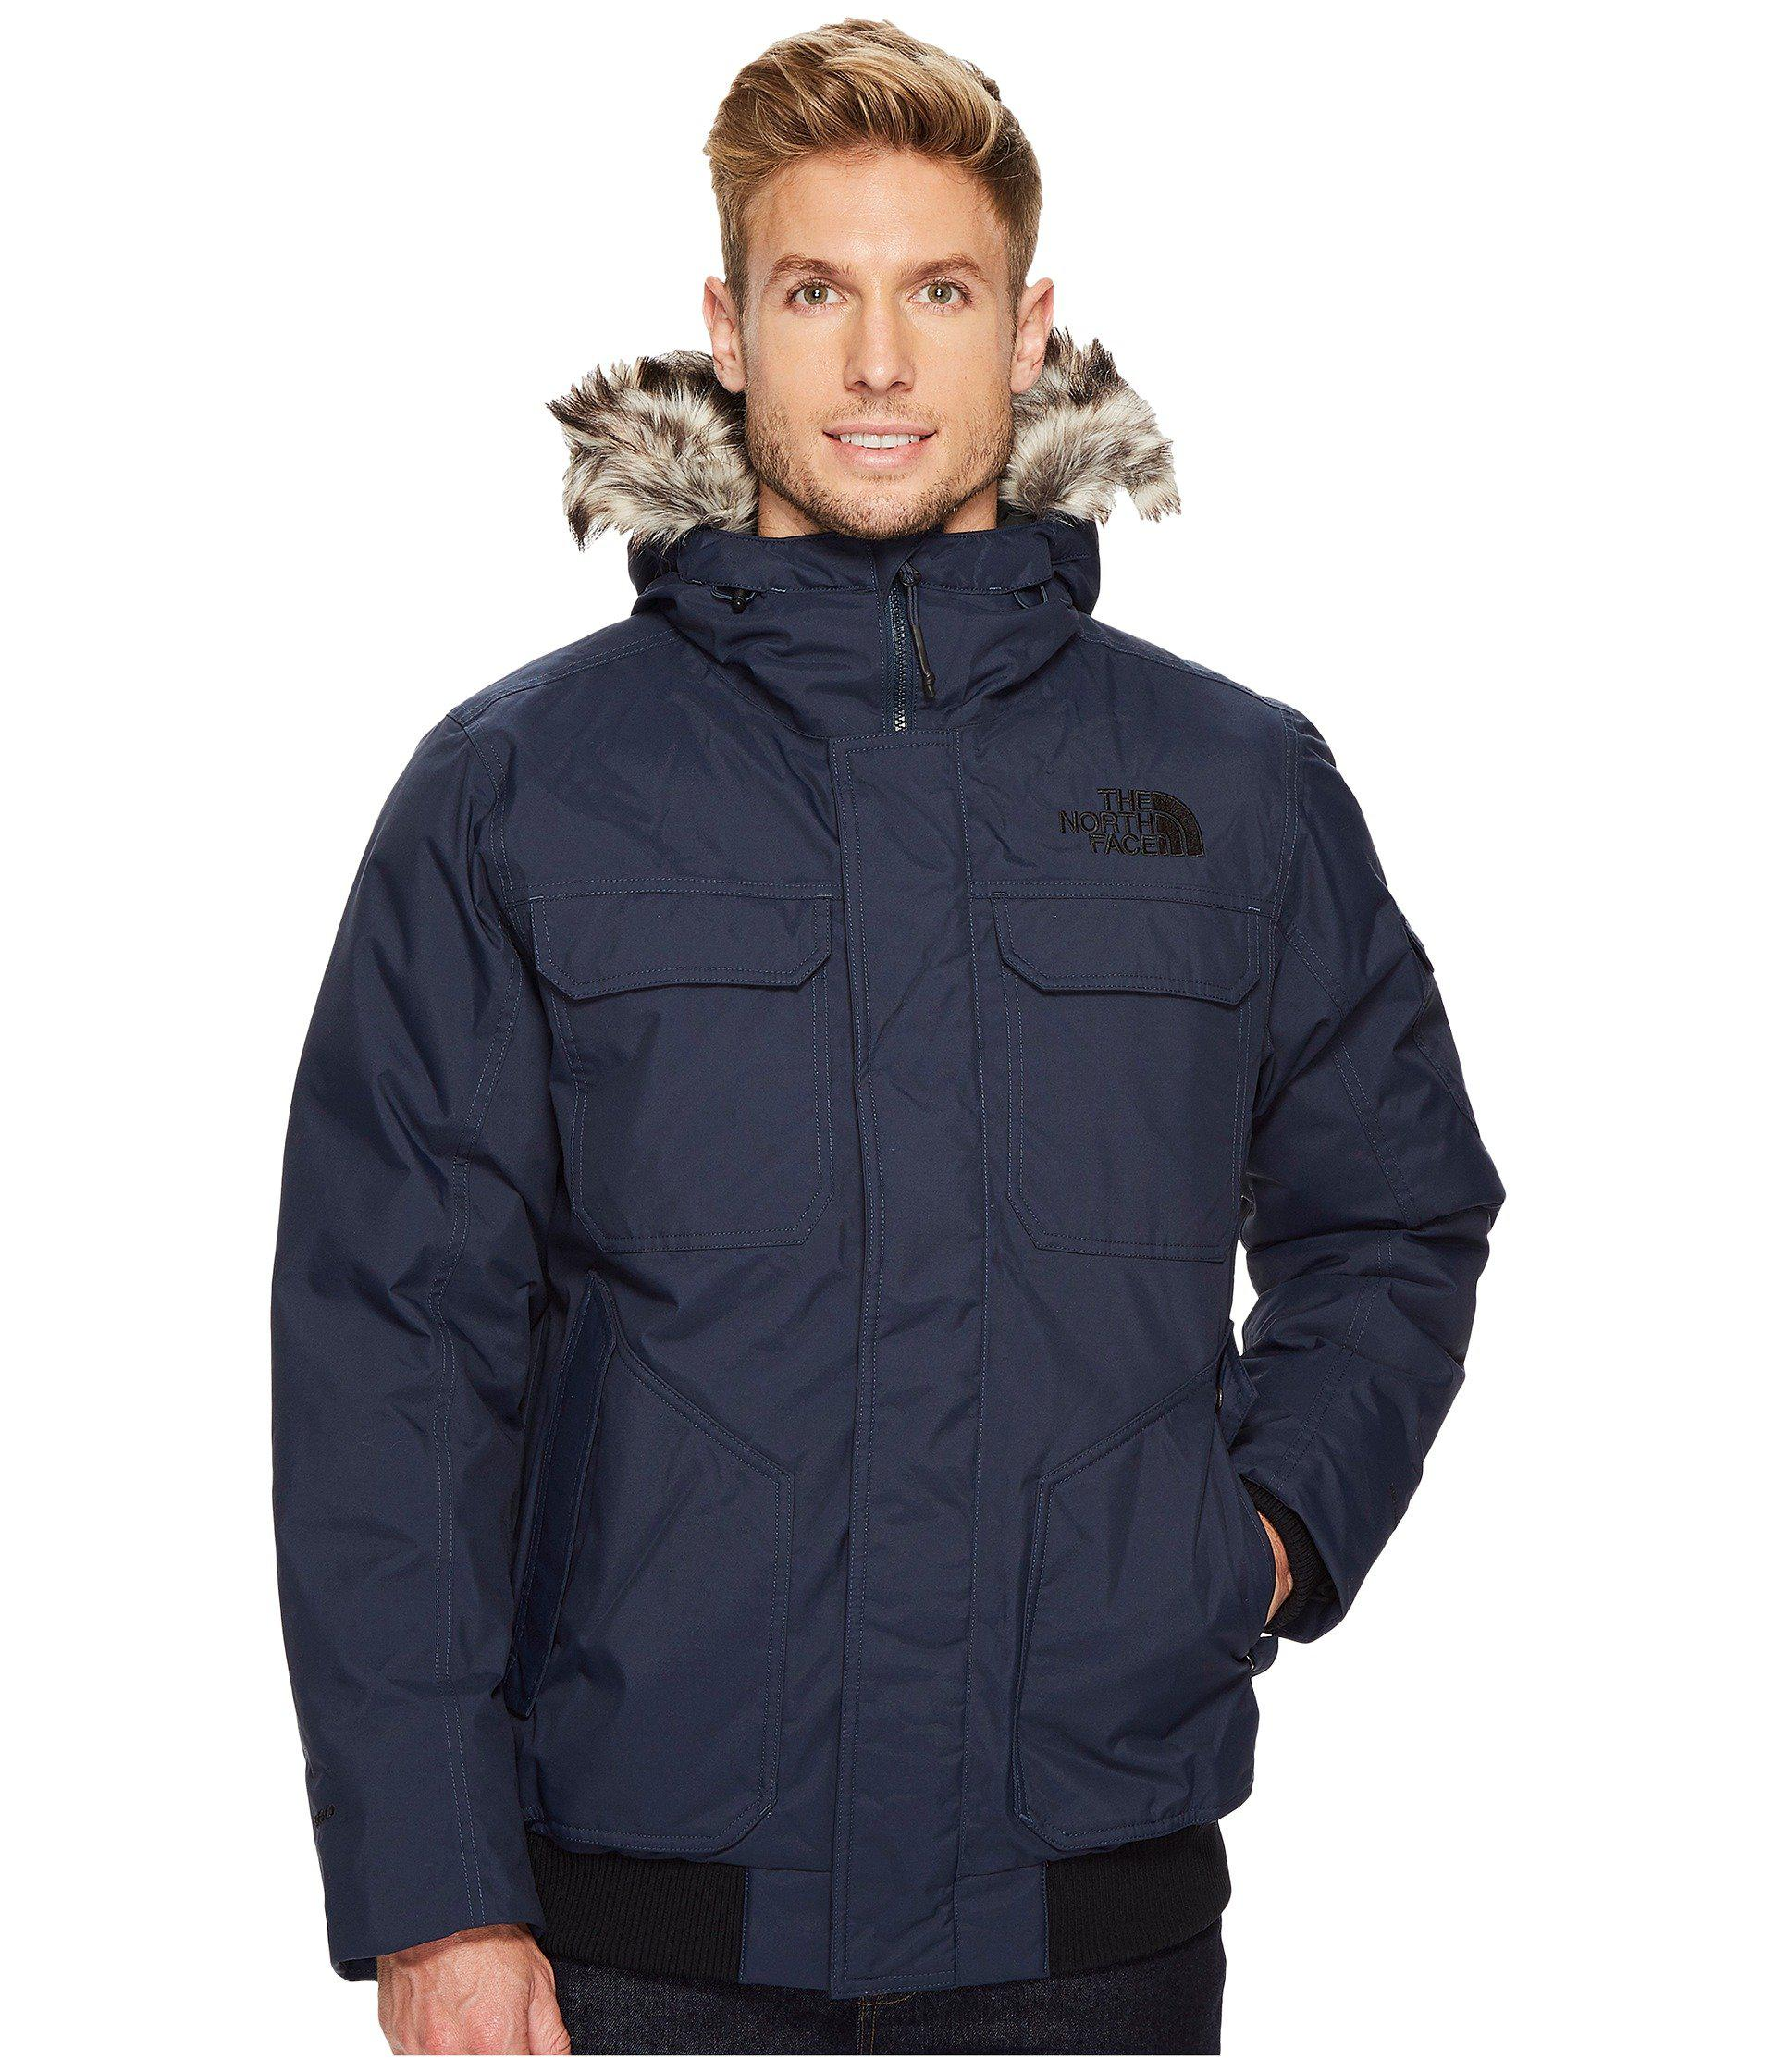 546acef123 Lyst - The North Face Gotham Jacket Iii (tnf Red tnf Black) Men s ...